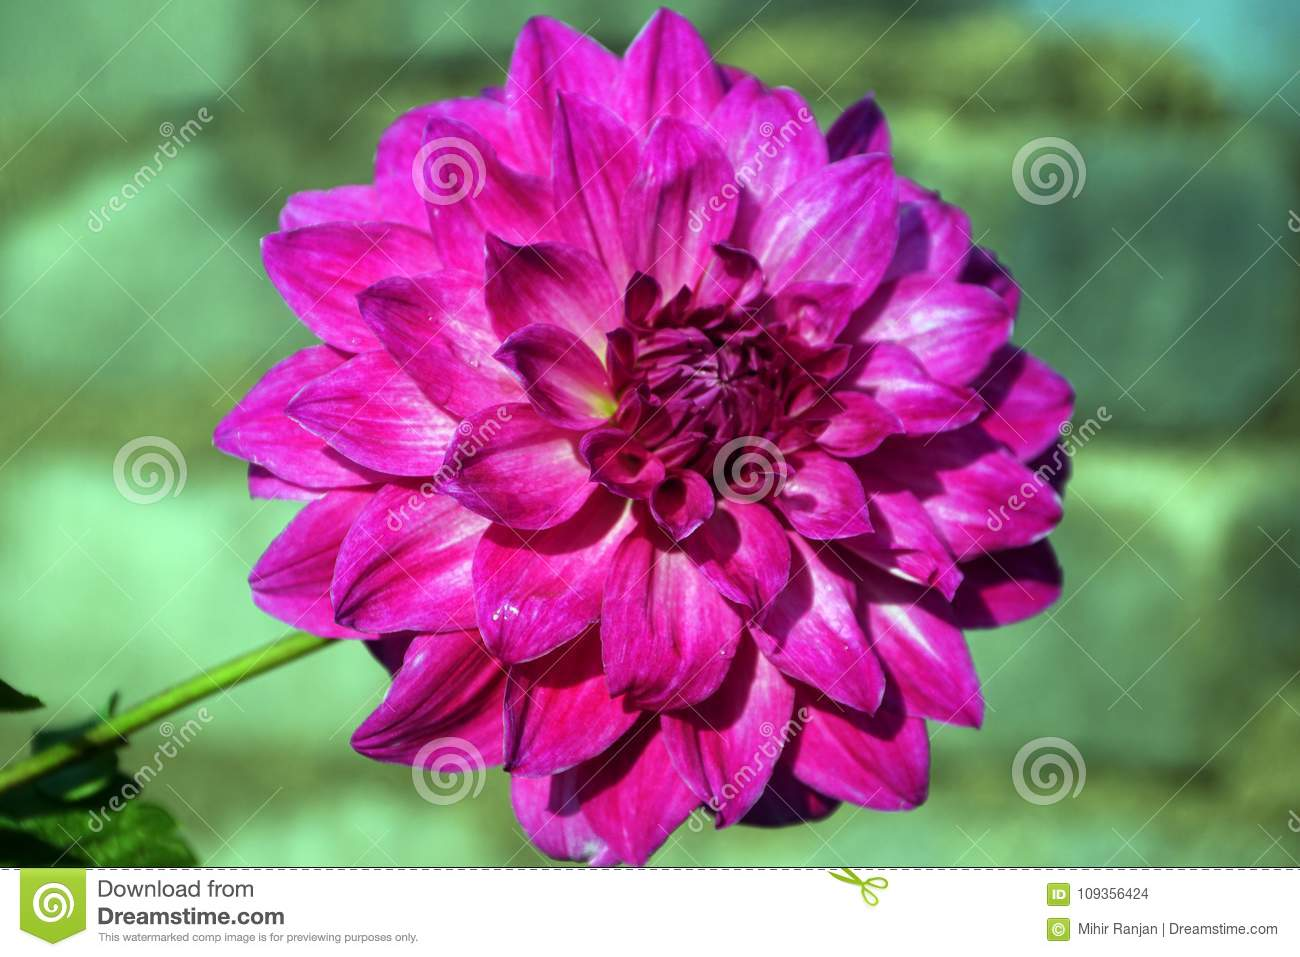 A close up of pink dahlia flower stock photo image of purple download a close up of pink dahlia flower stock photo image of purple izmirmasajfo